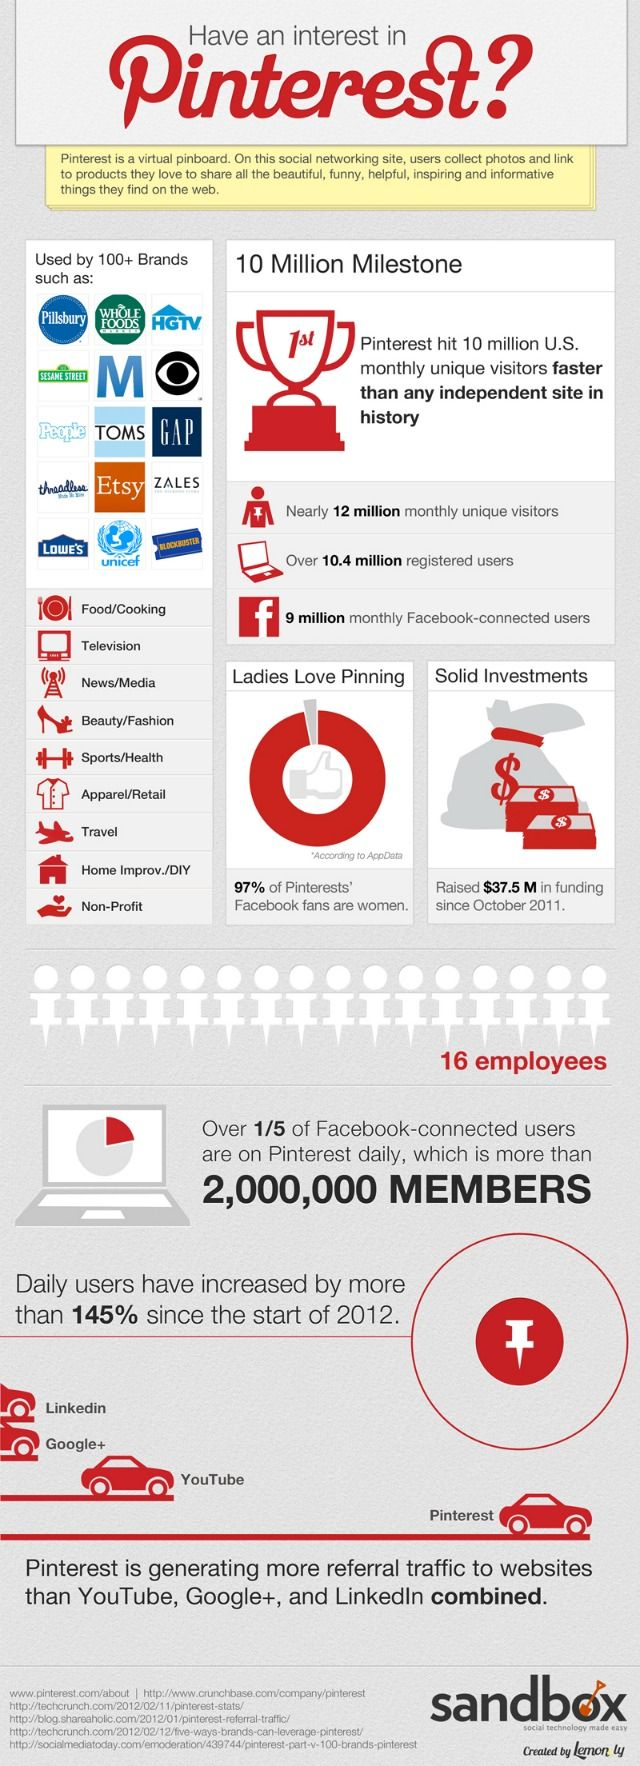 Pinterest: Everything You Wanted to Know: Social Network, Internet Marketing, Website, Facts, Social Media, Pinterest Infographic, Interesting, Socialmedia, Medium